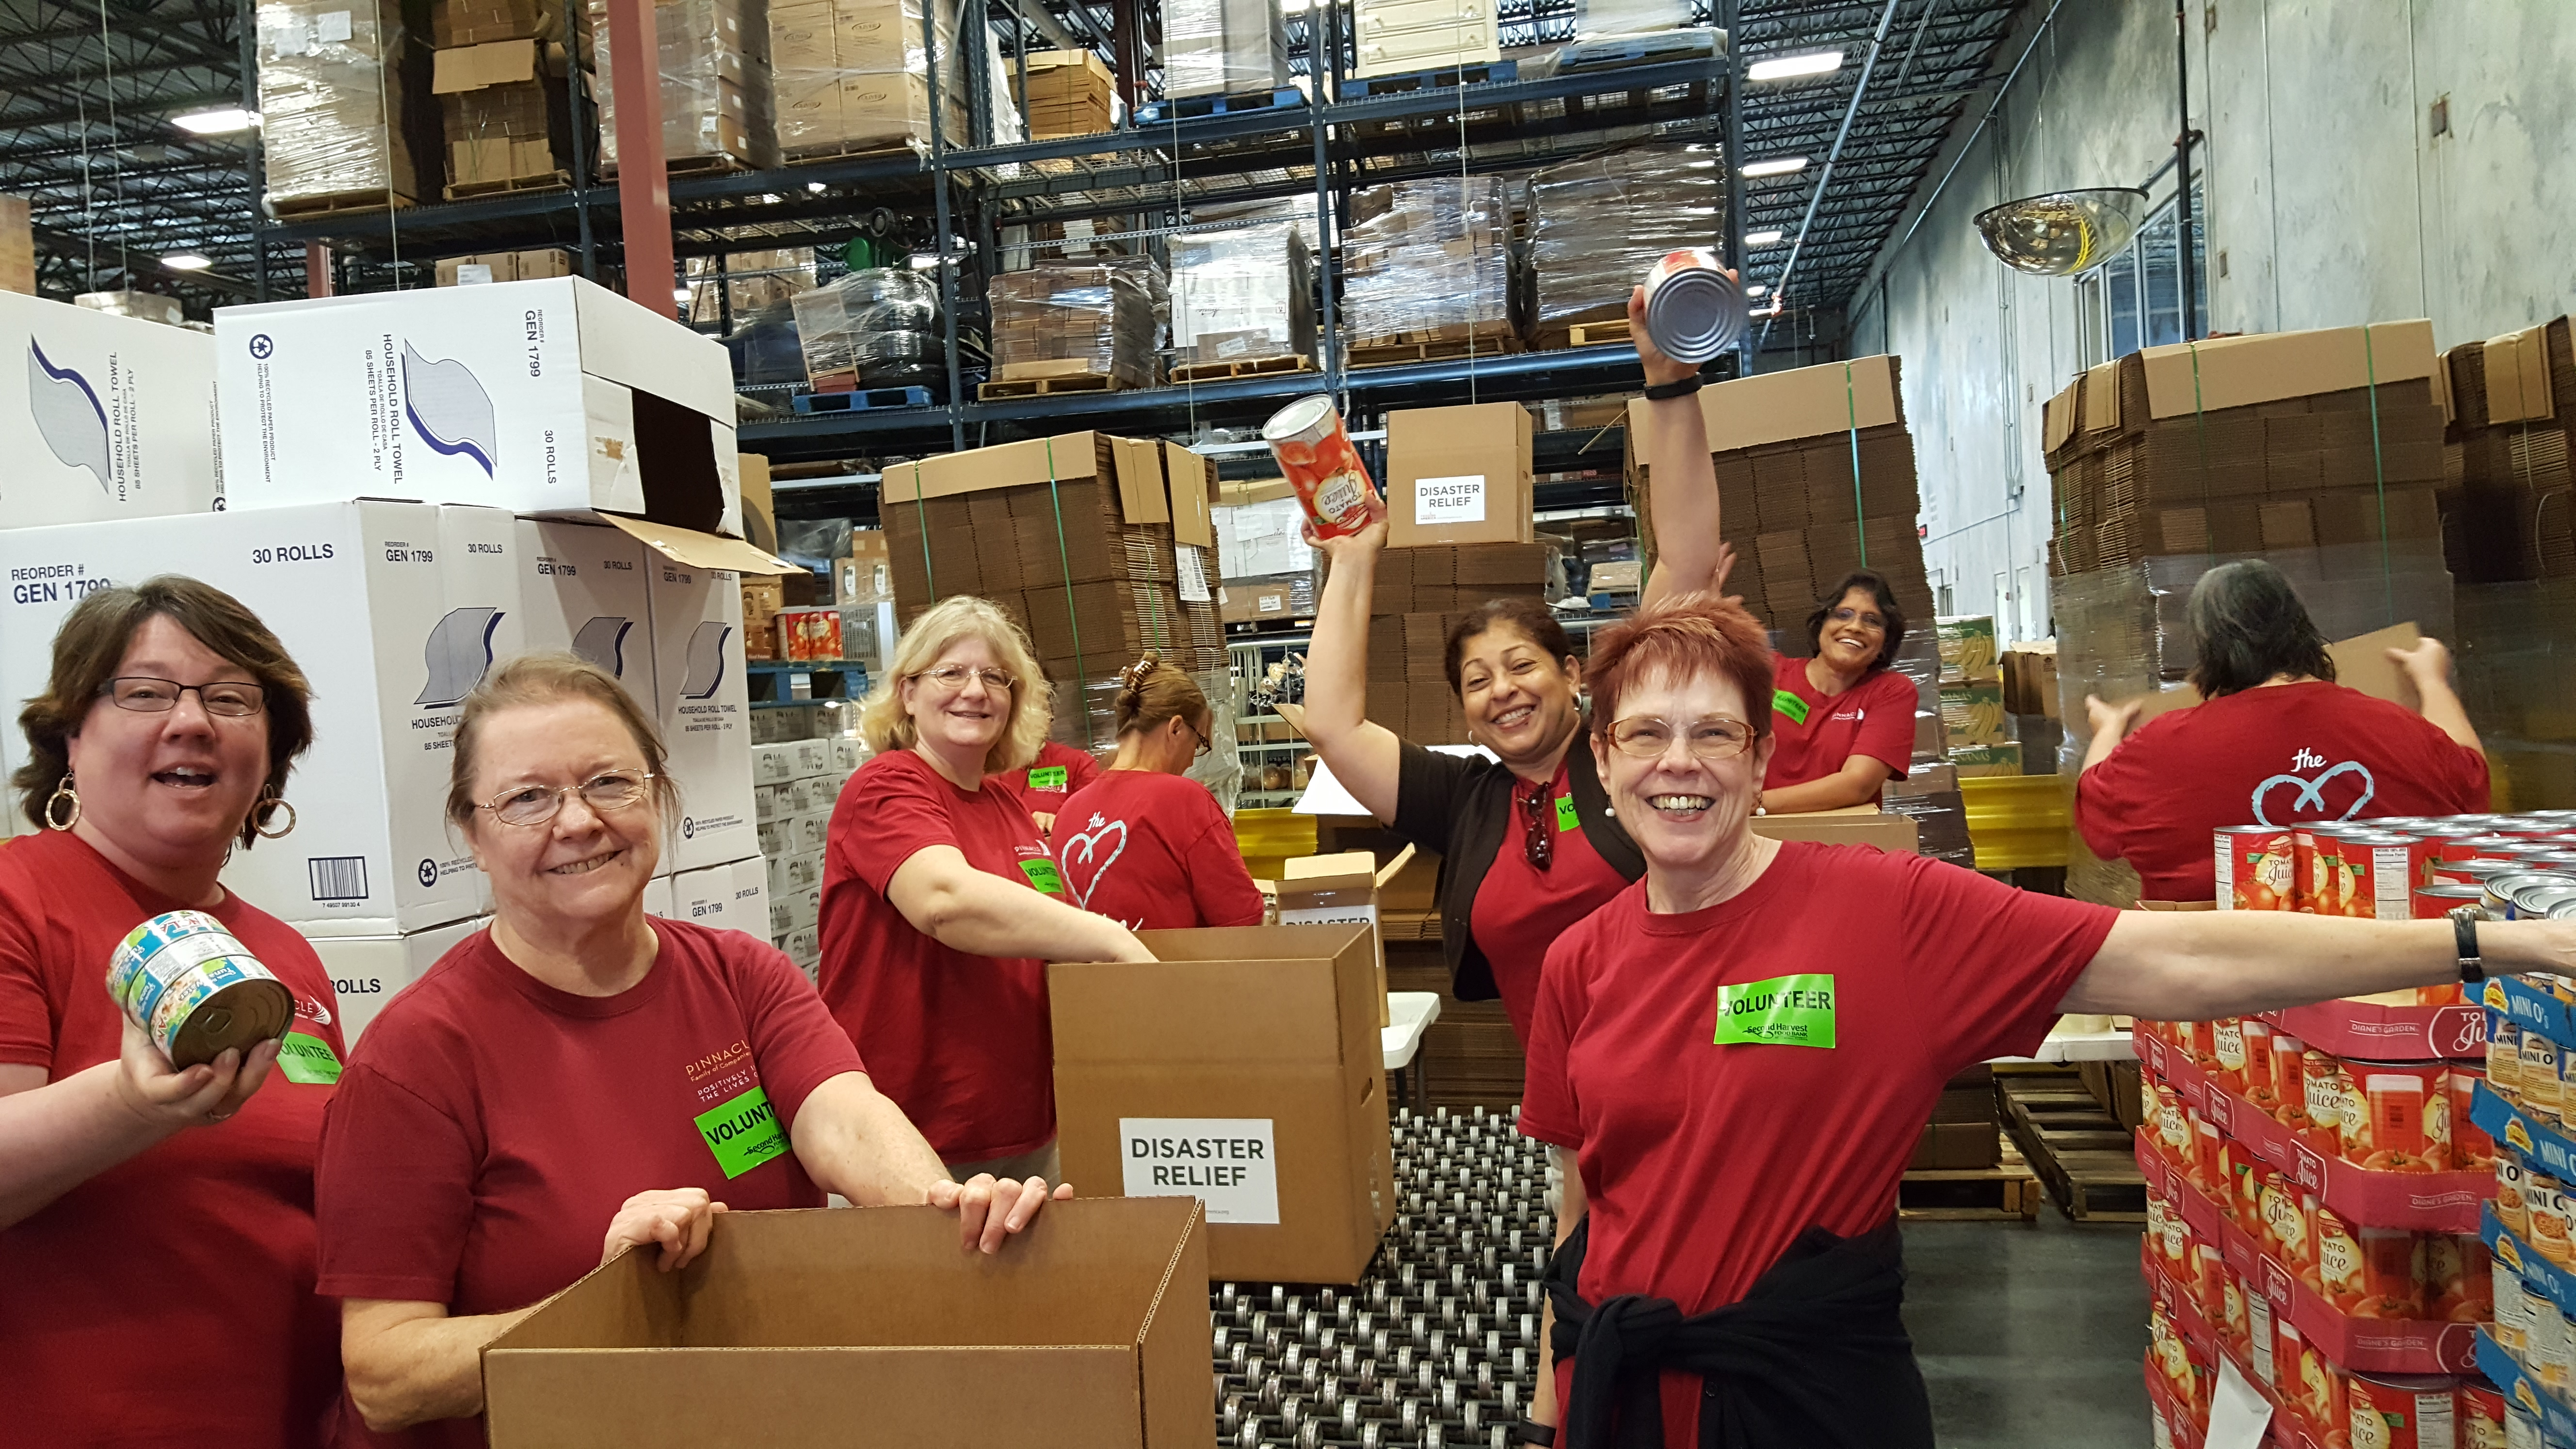 Pinnacle Launches First Corporate Team Community Service